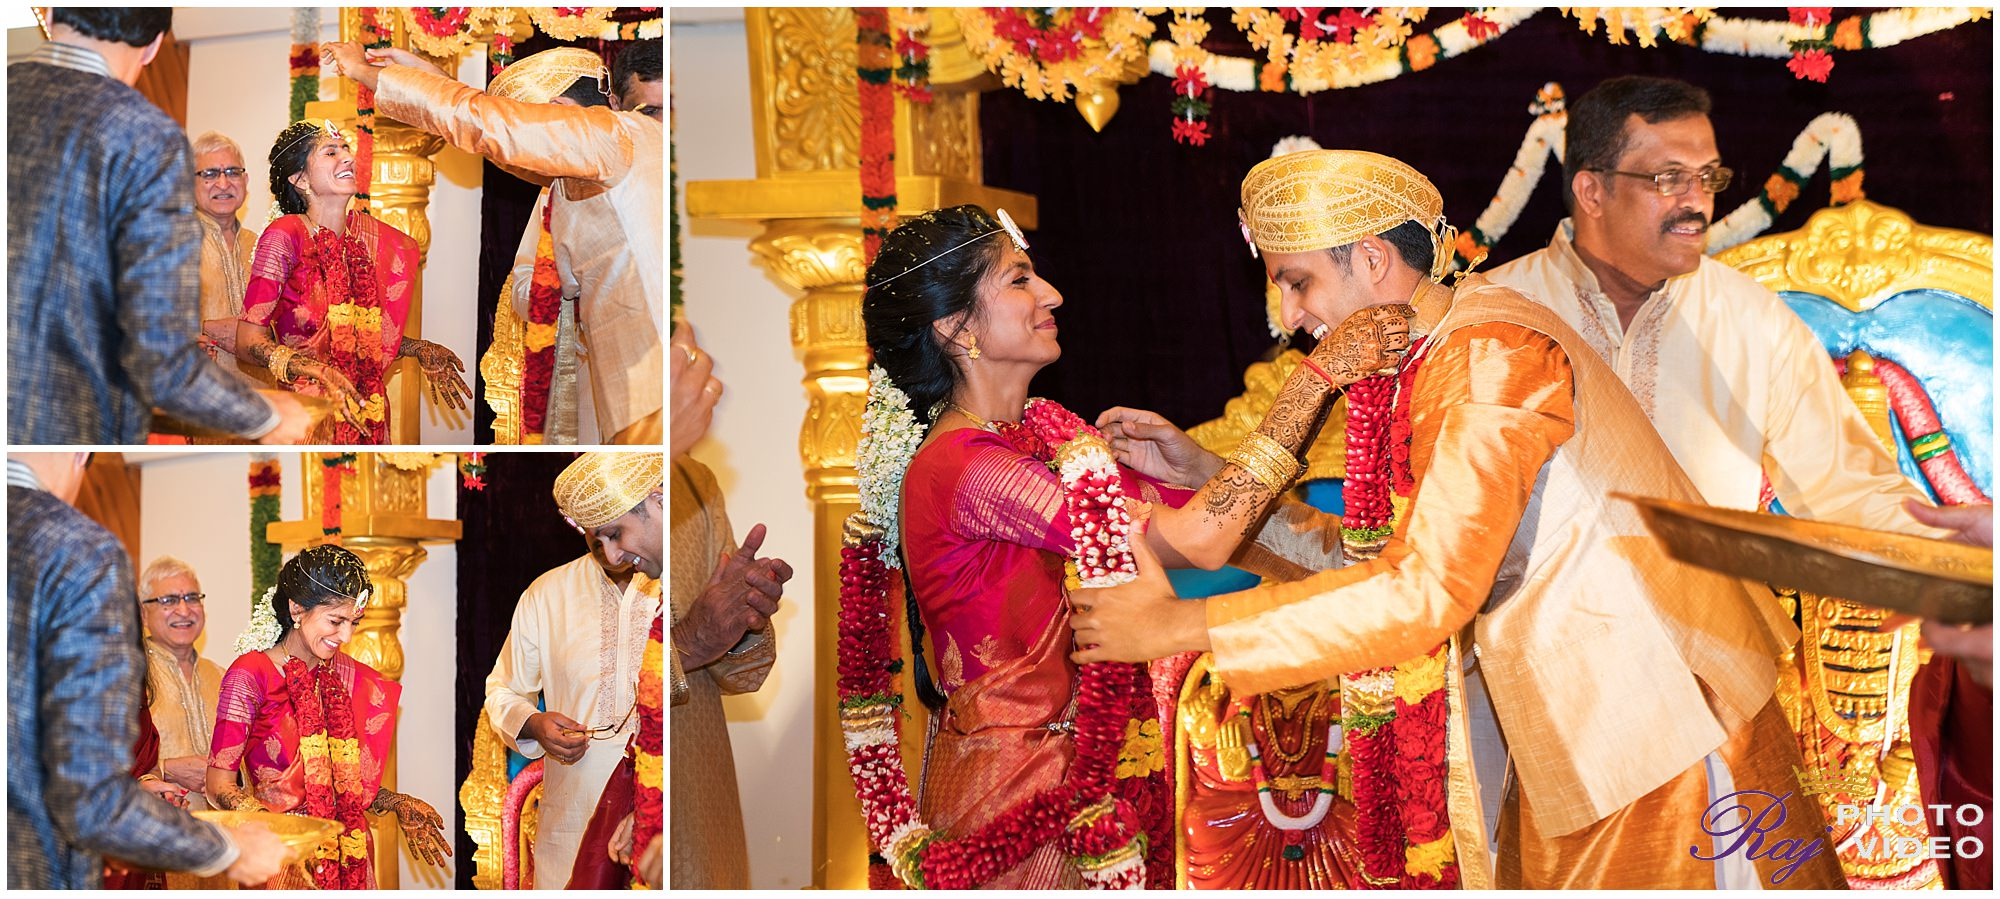 Sri_Venkata_Krishna_Kshetra_Temple_Tempe_Arizona_Indian_Wedding_Sapna_Shyam-9.jpg